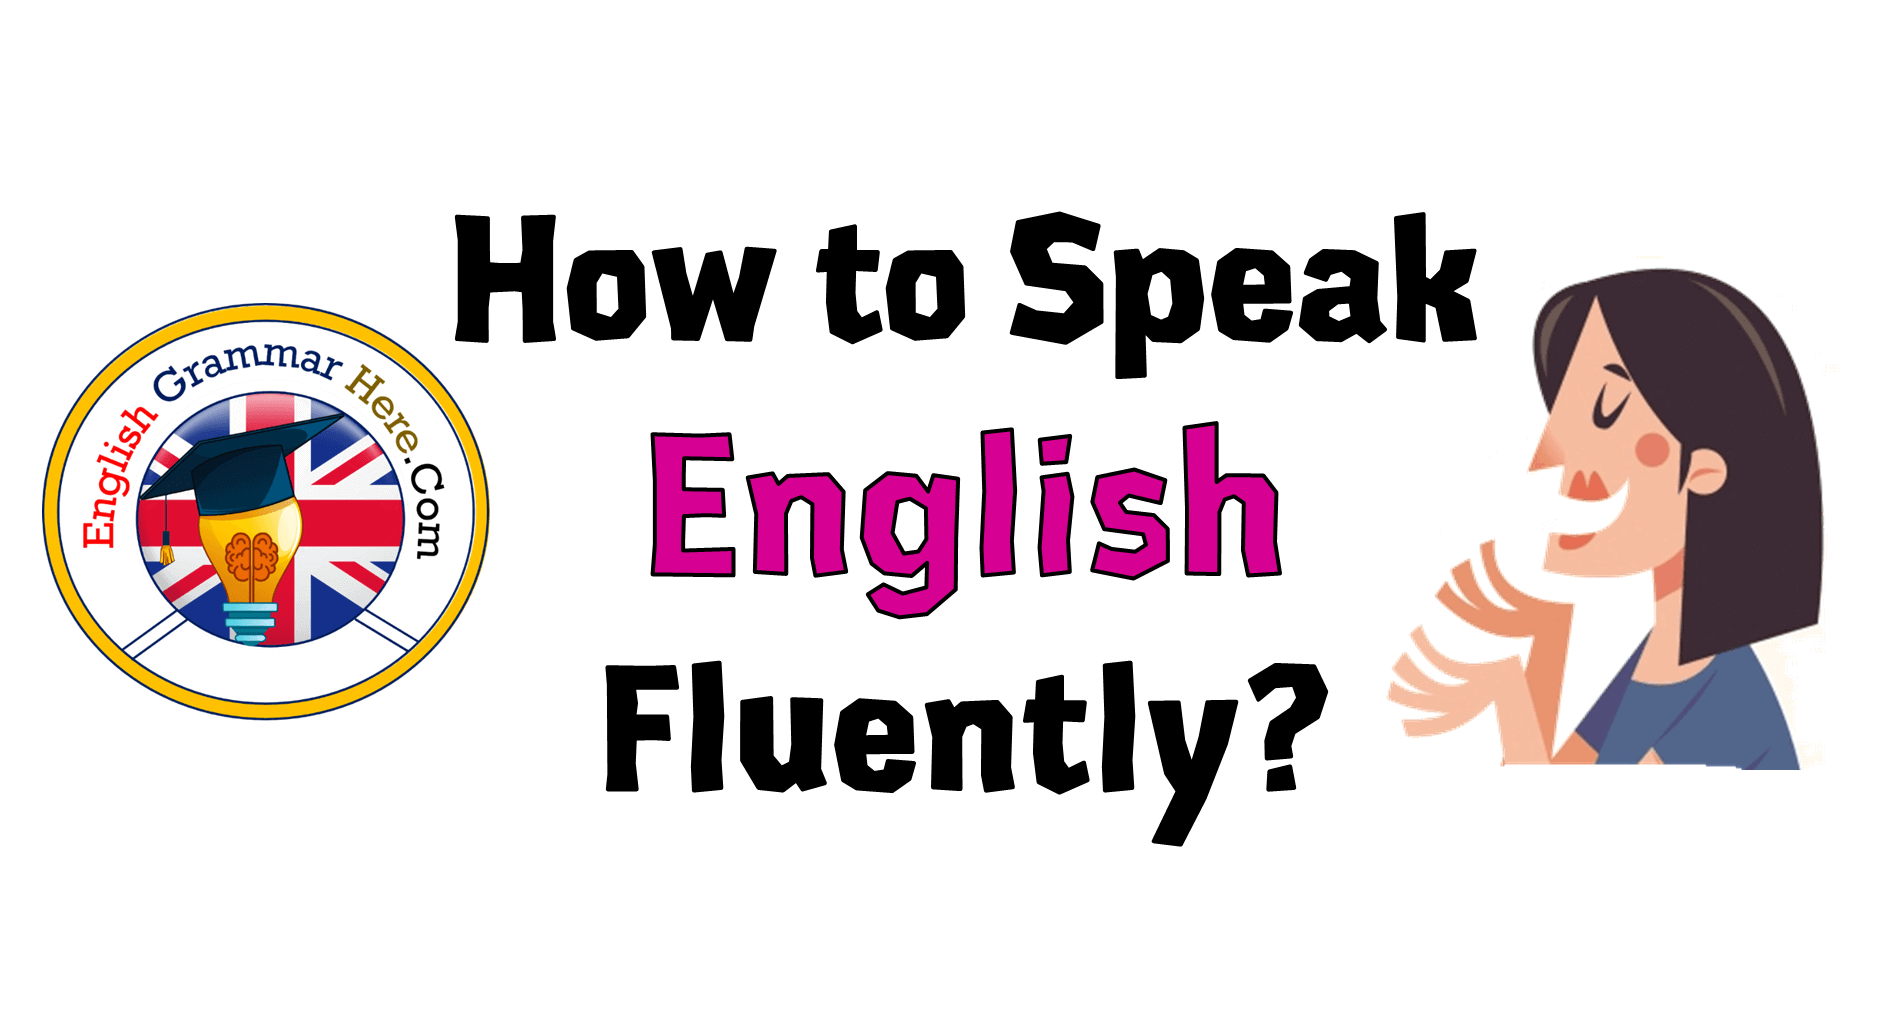 How to Speak English Fluently